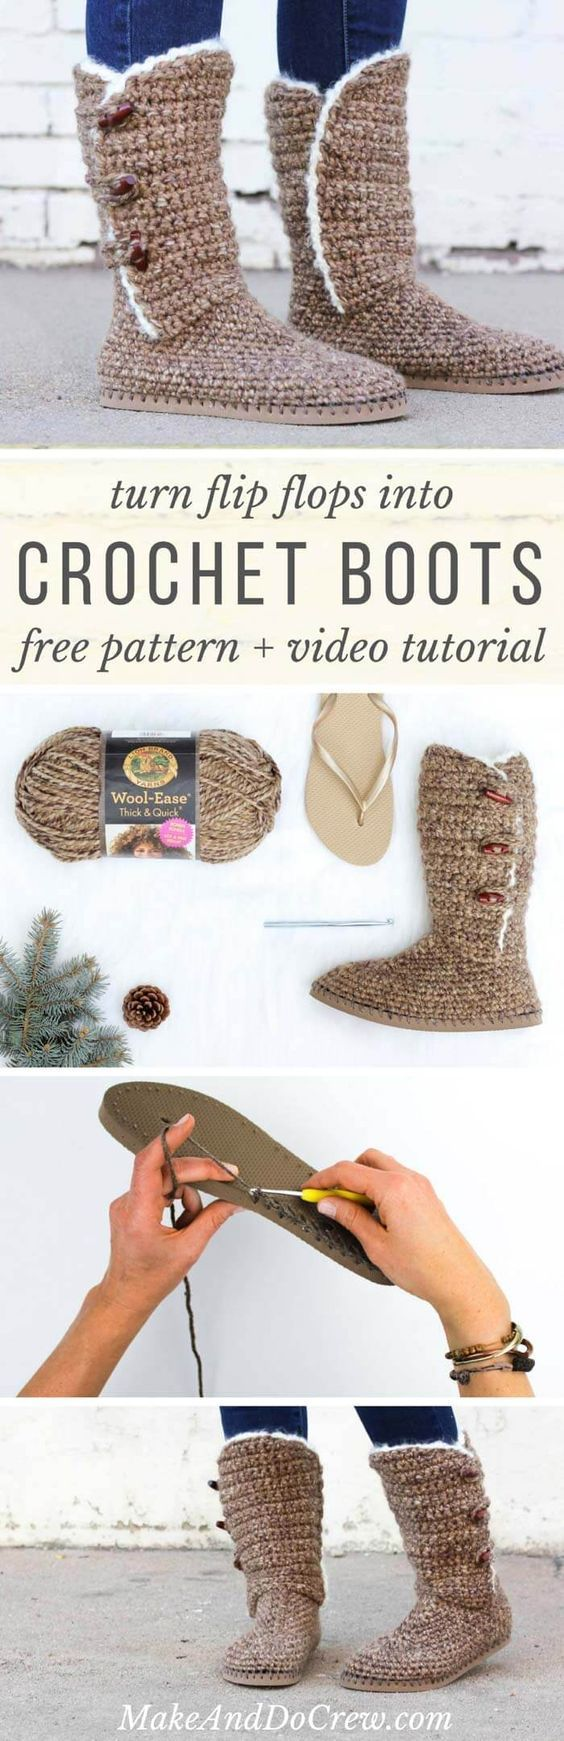 Crochet boots with flip flop soles free pattern video crochet boots with flip flop soles free pattern video bankloansurffo Image collections